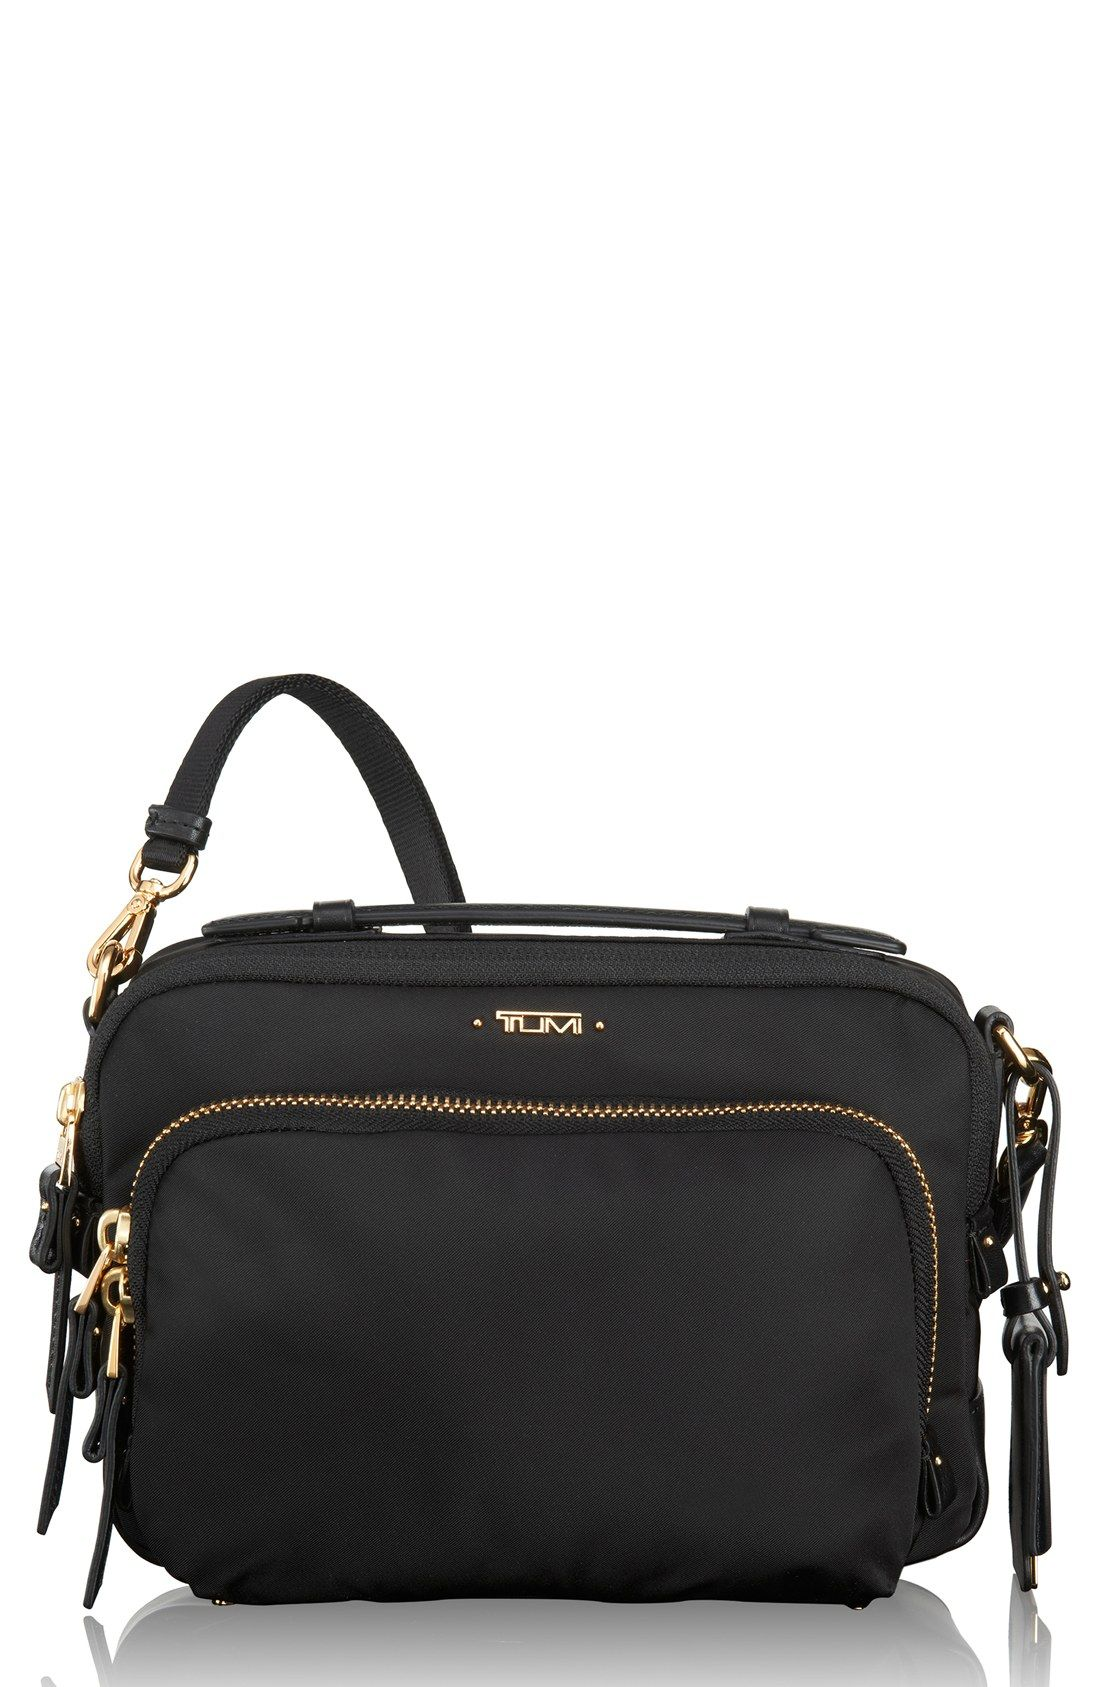 db83b5bb9c Tumi  Luanda  Crossbody Flight Bag